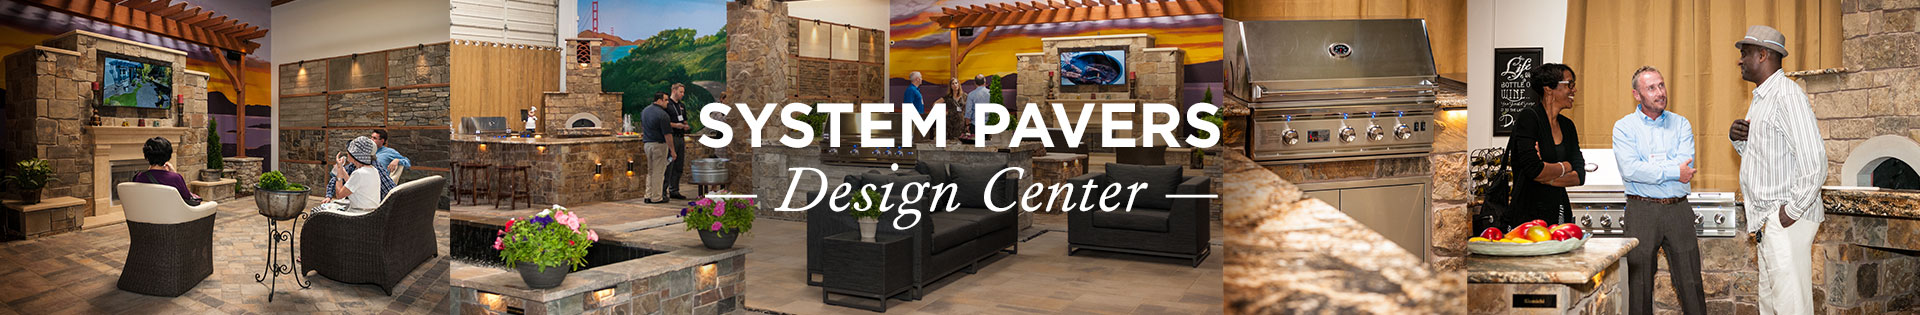 System Pavers Denver